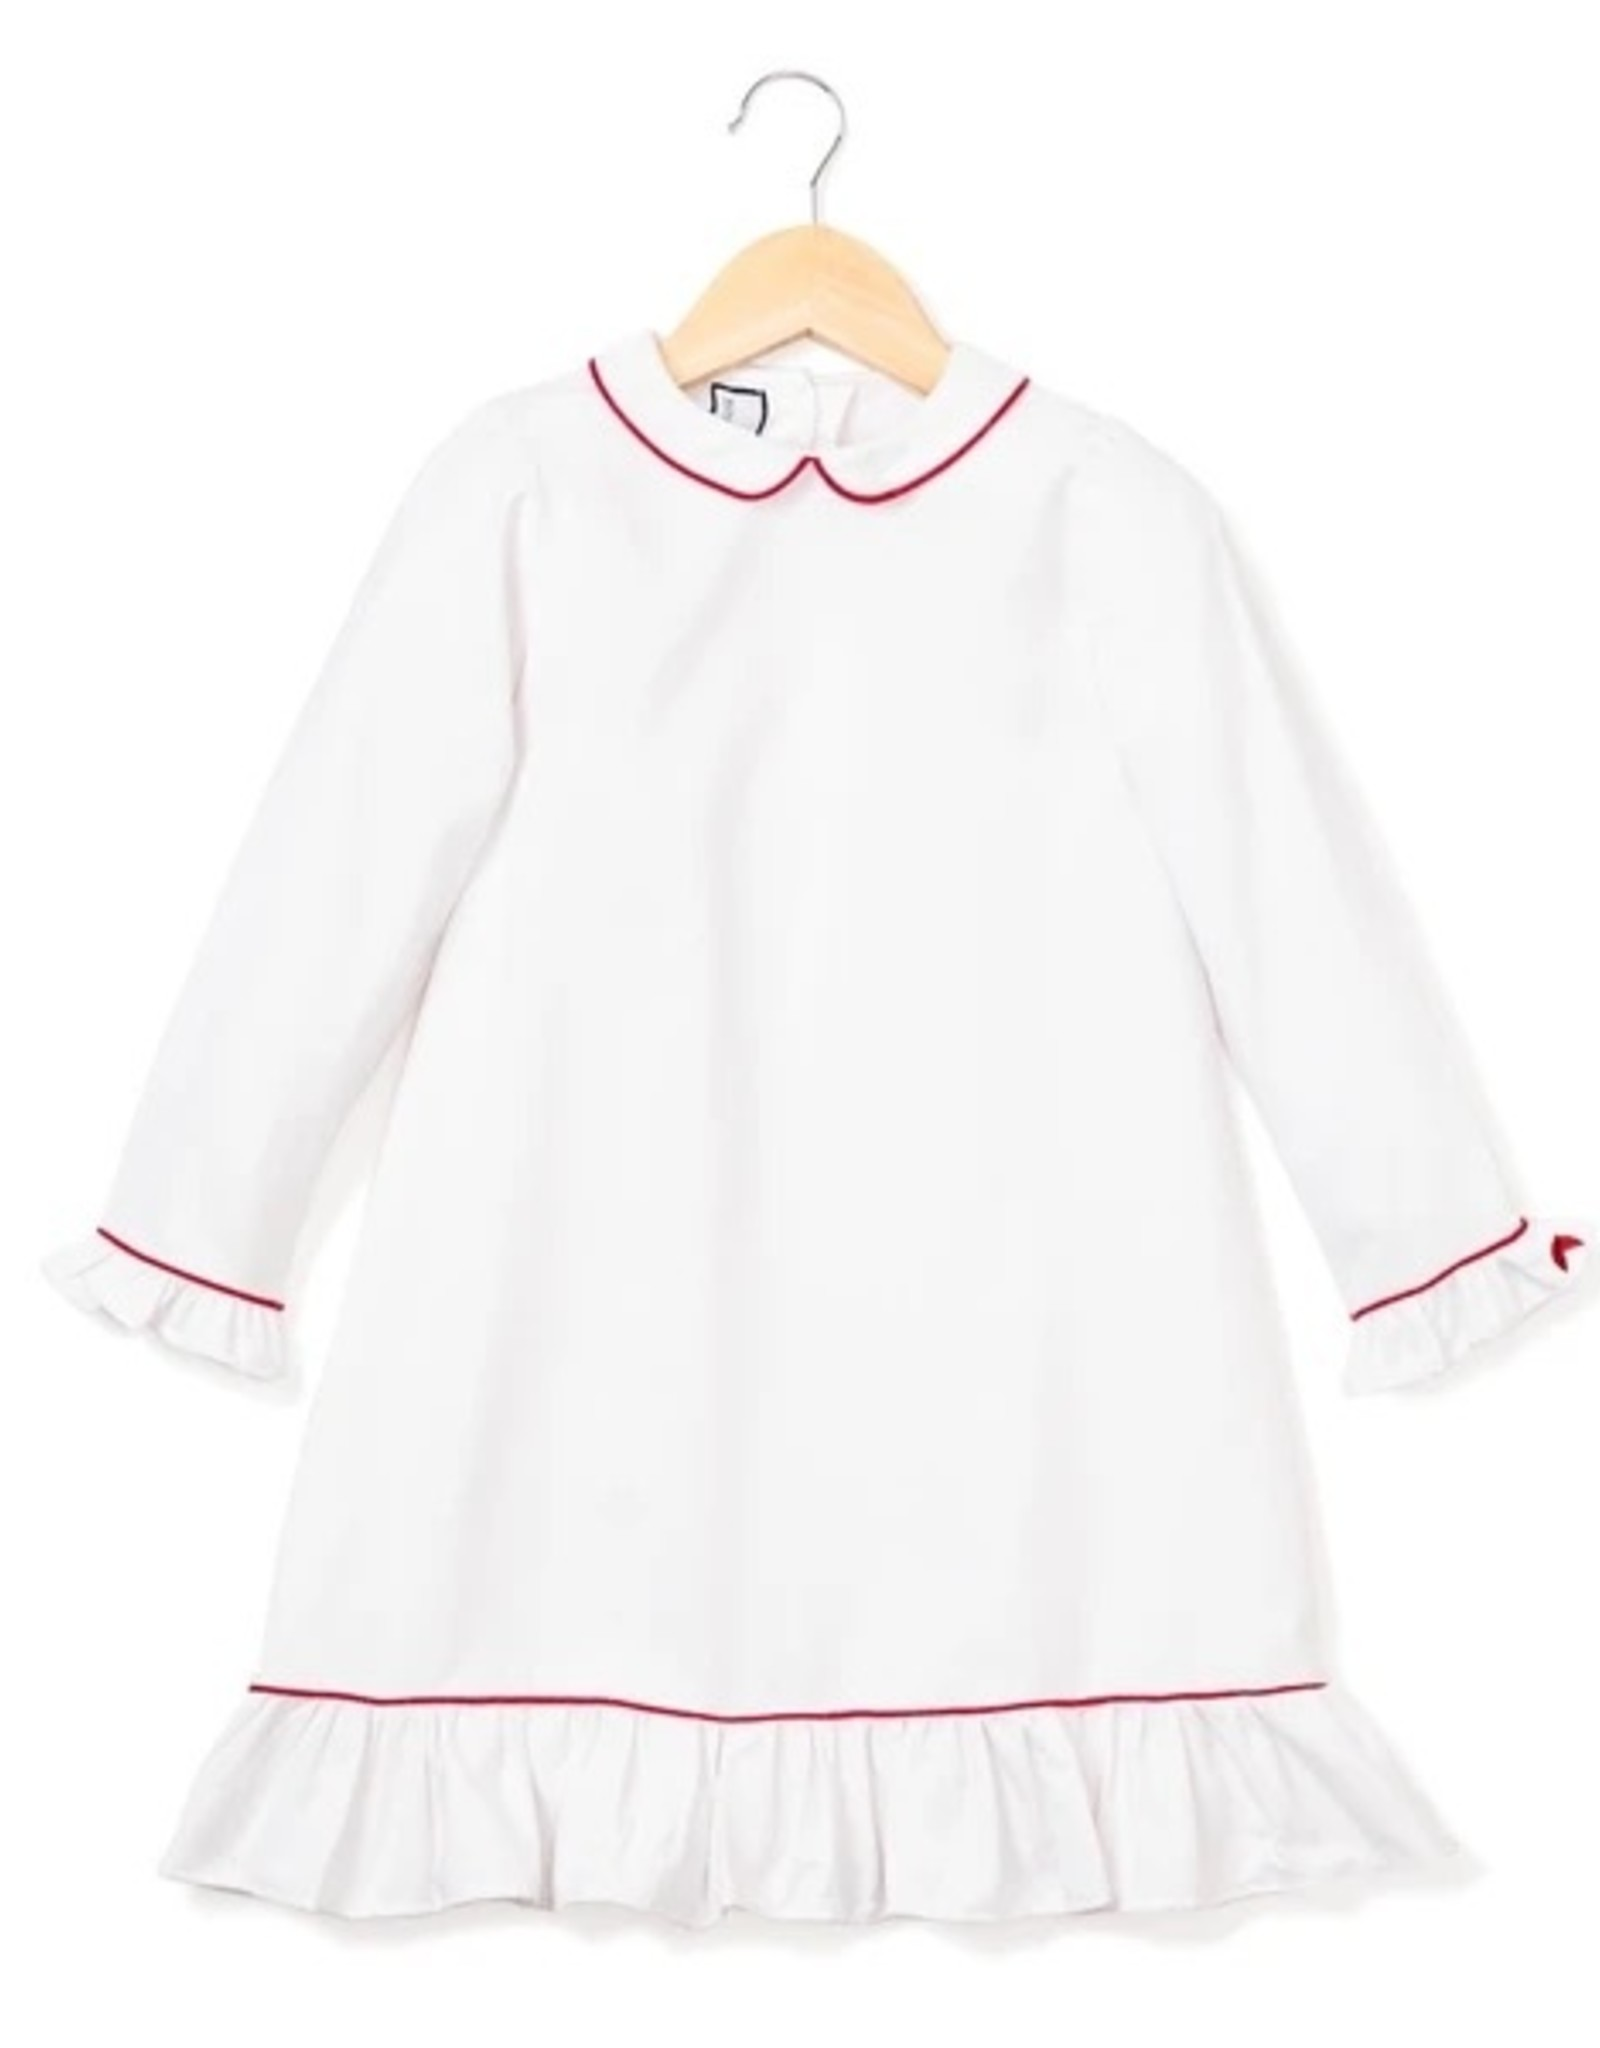 Petite Plume White Sophie Nightgown With Red Piping